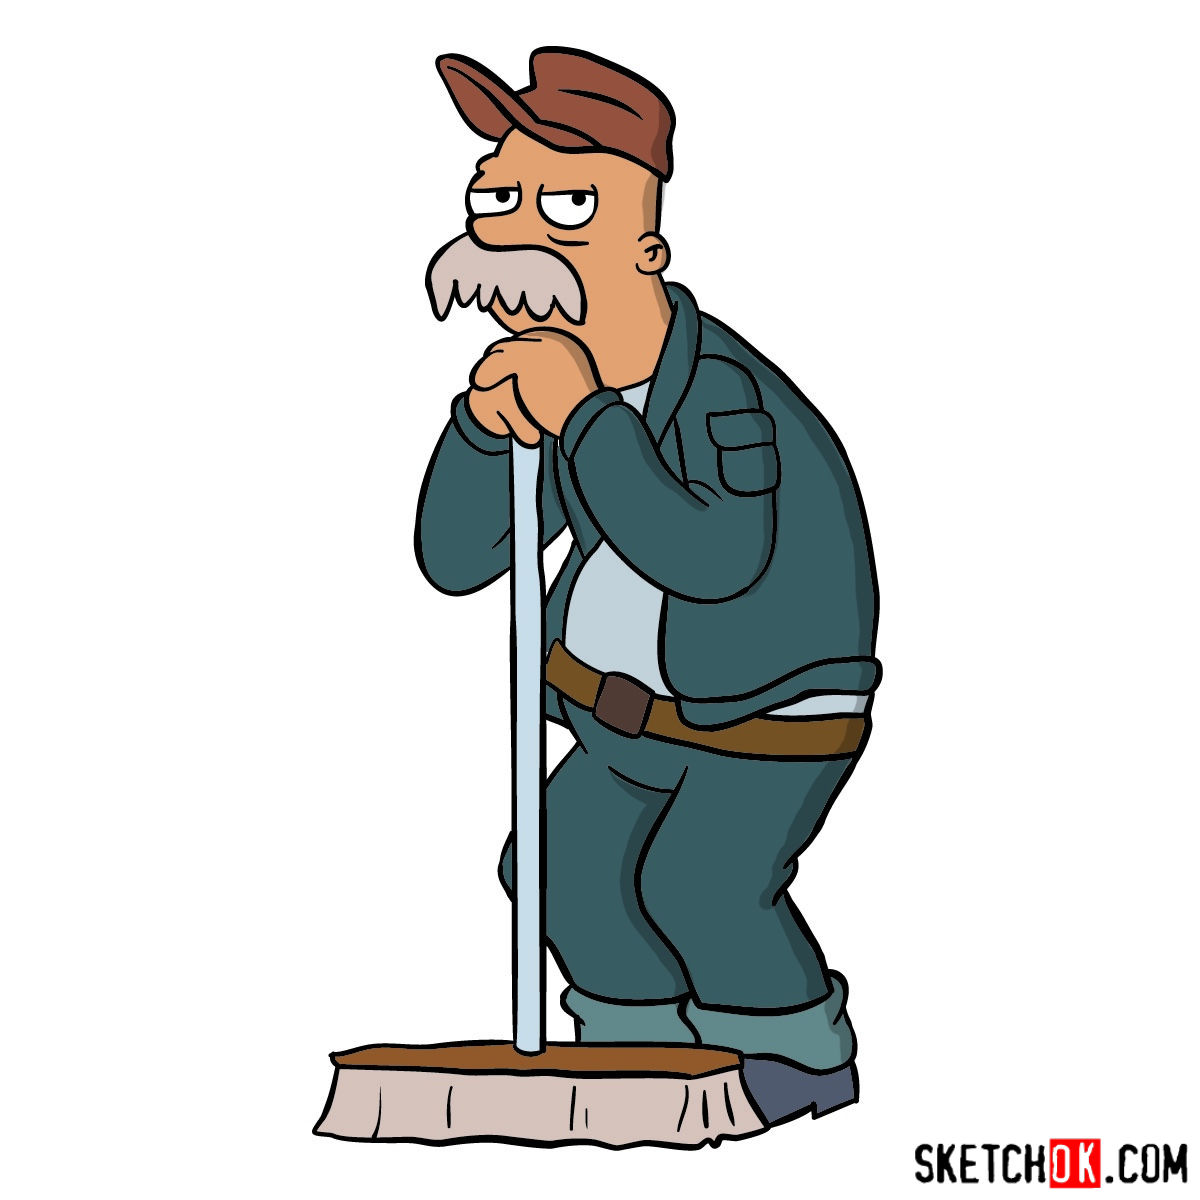 How to draw Scruffy the janitor